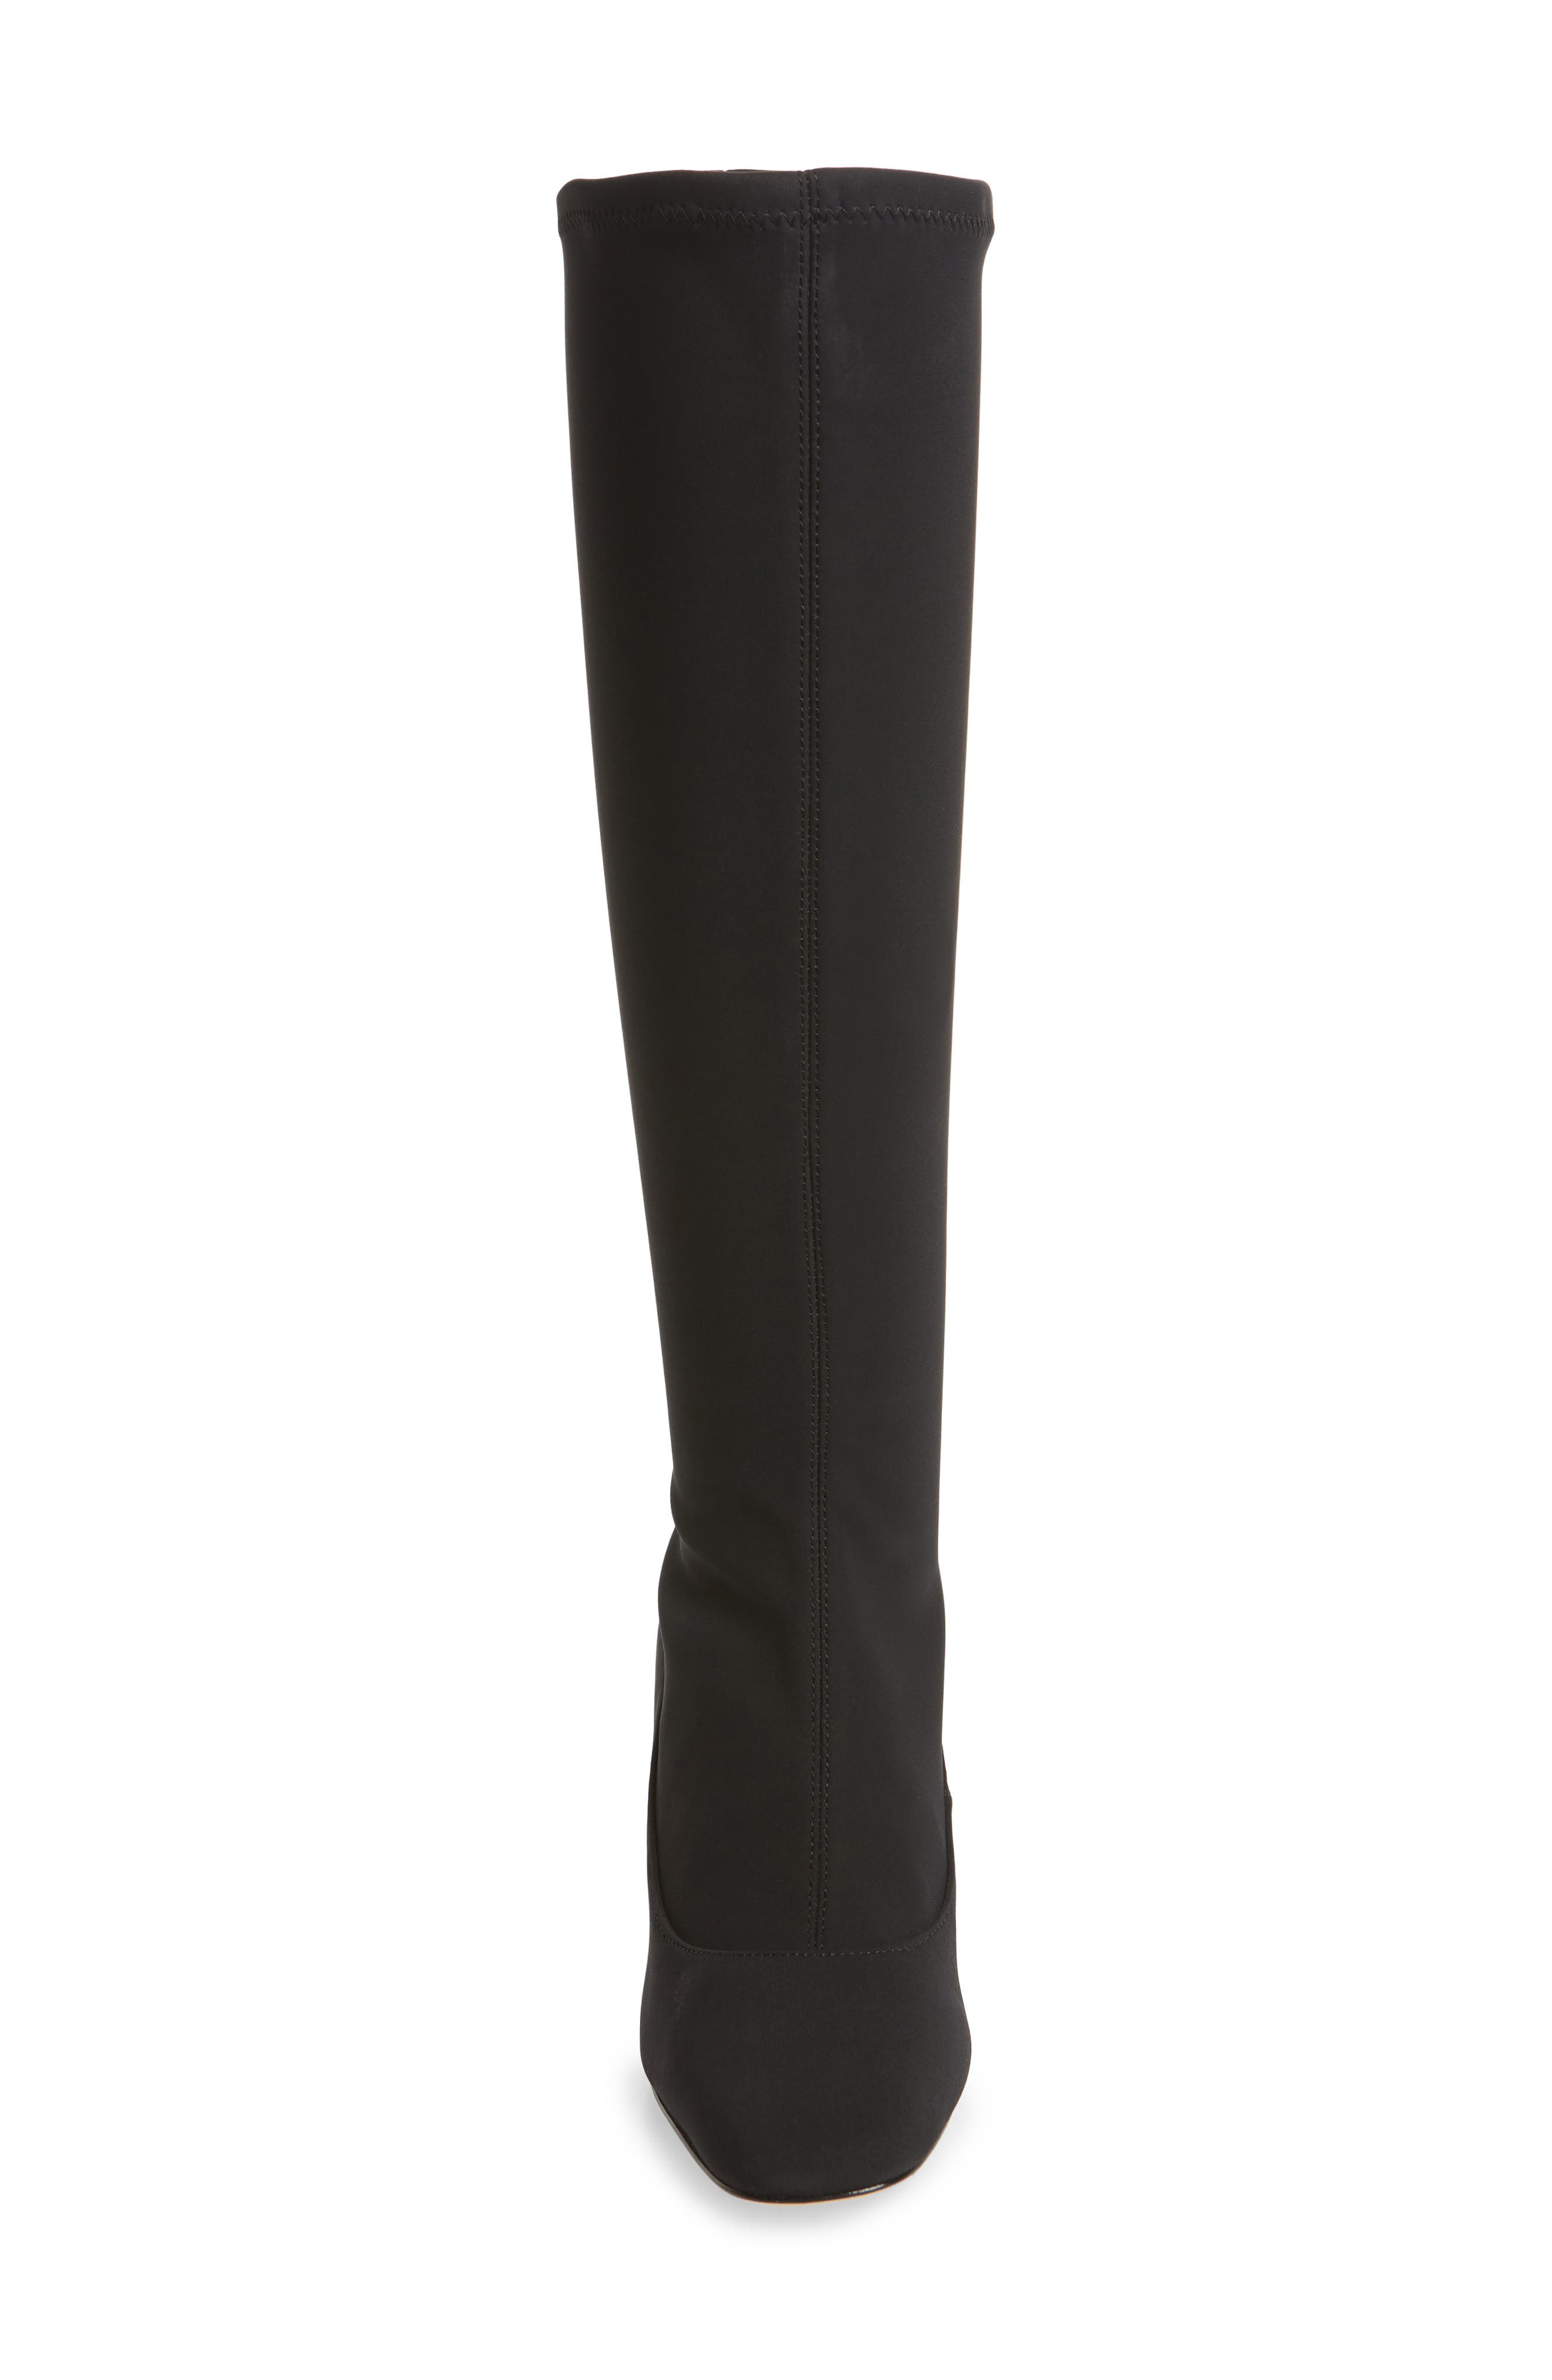 DONALD PLINER, Gerti Knee High Stretch Boot, Alternate thumbnail 4, color, 001